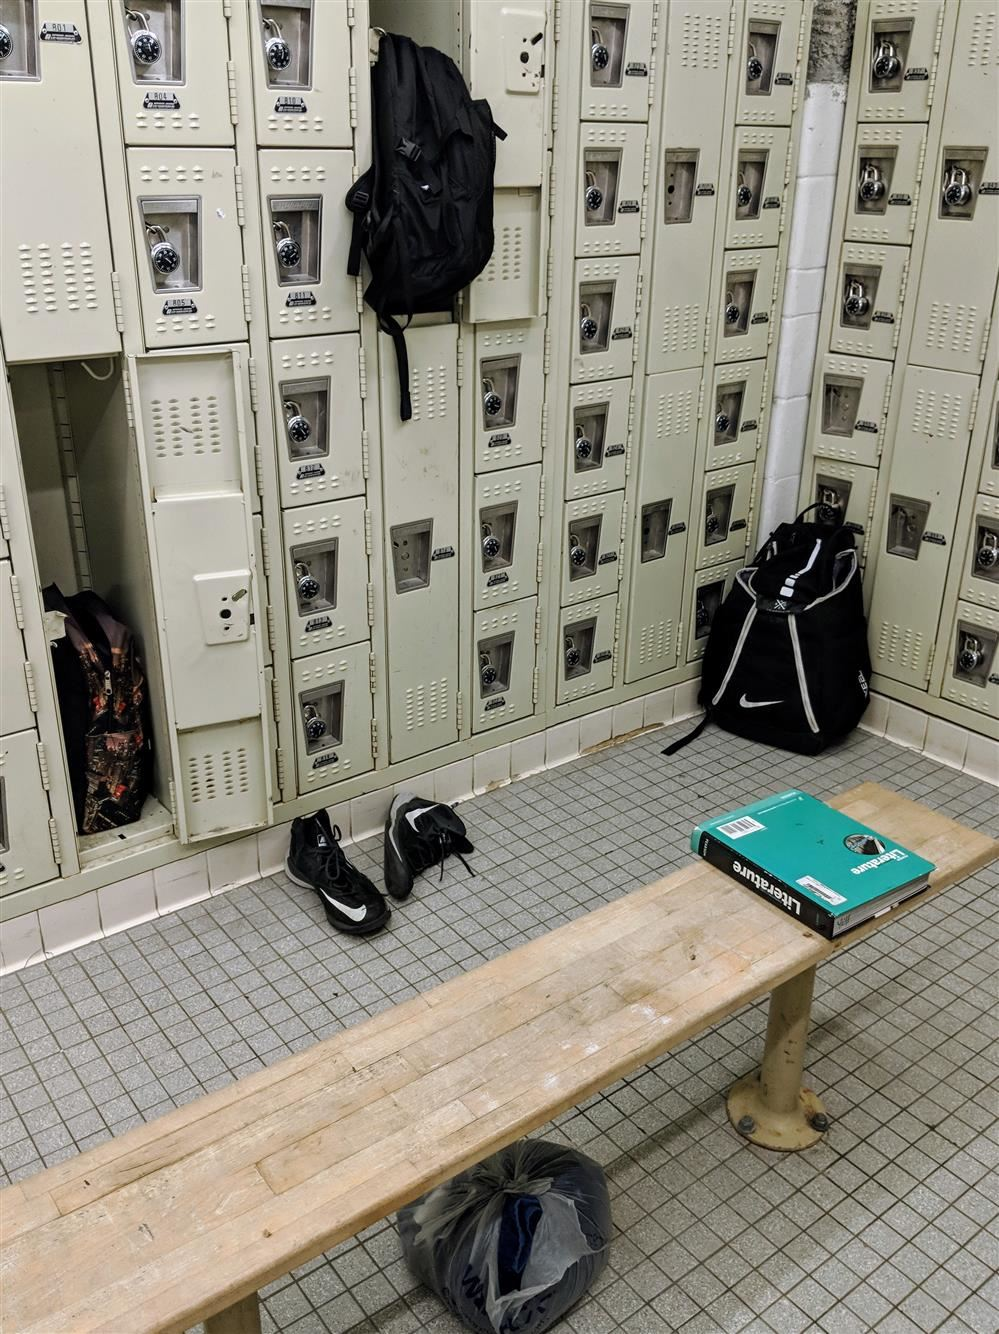 Some lockers NOT being locked!